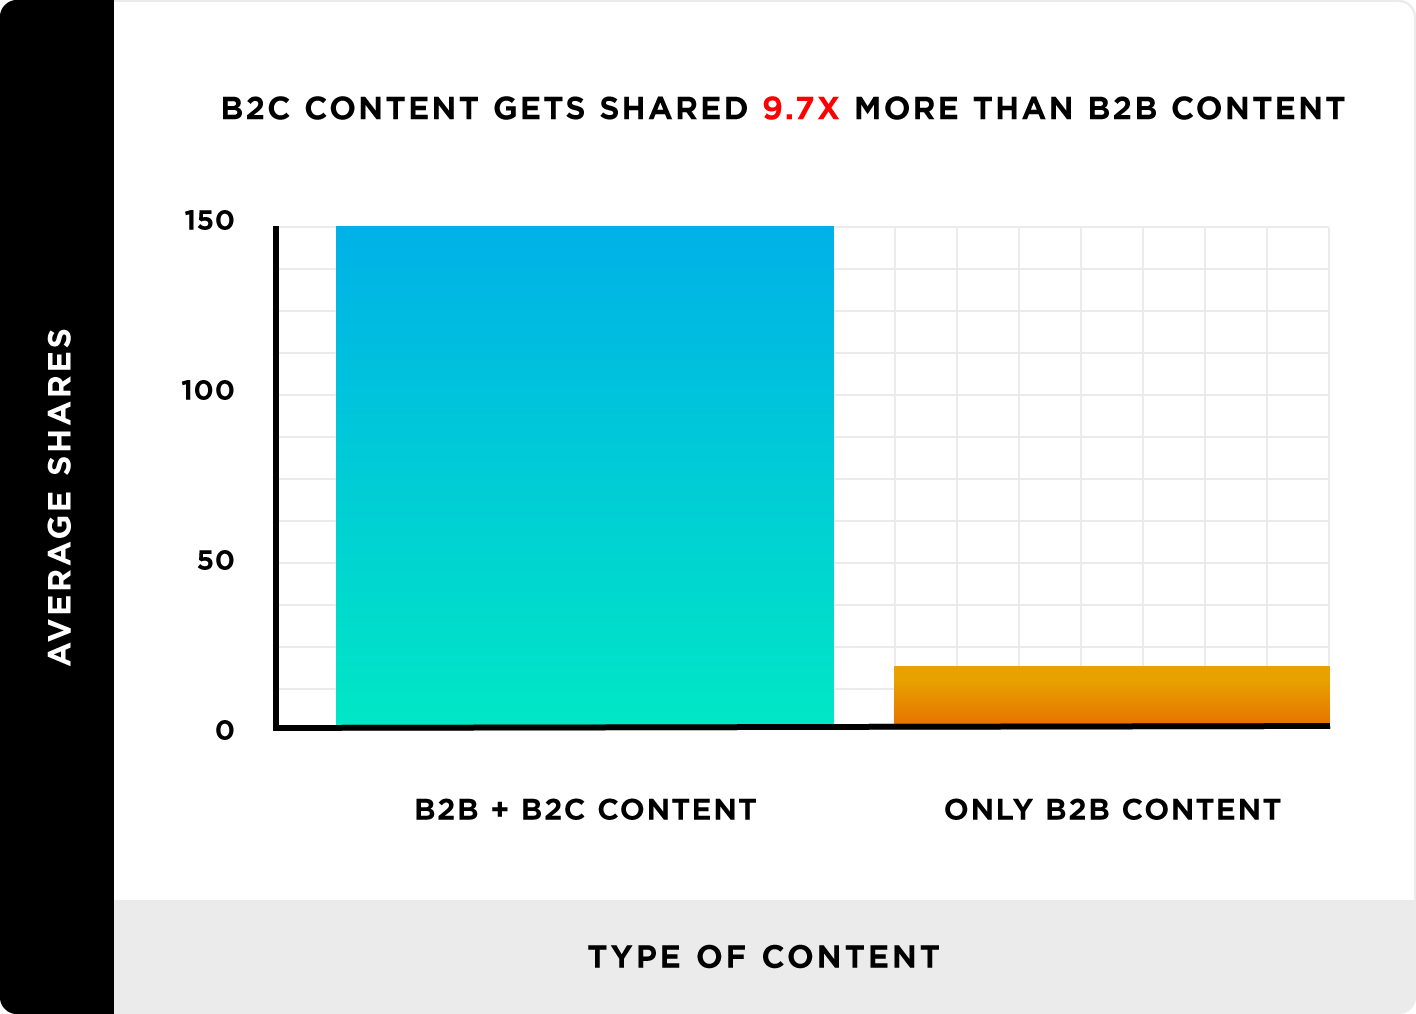 B2C content gets shred 9.7 times more than B2B content